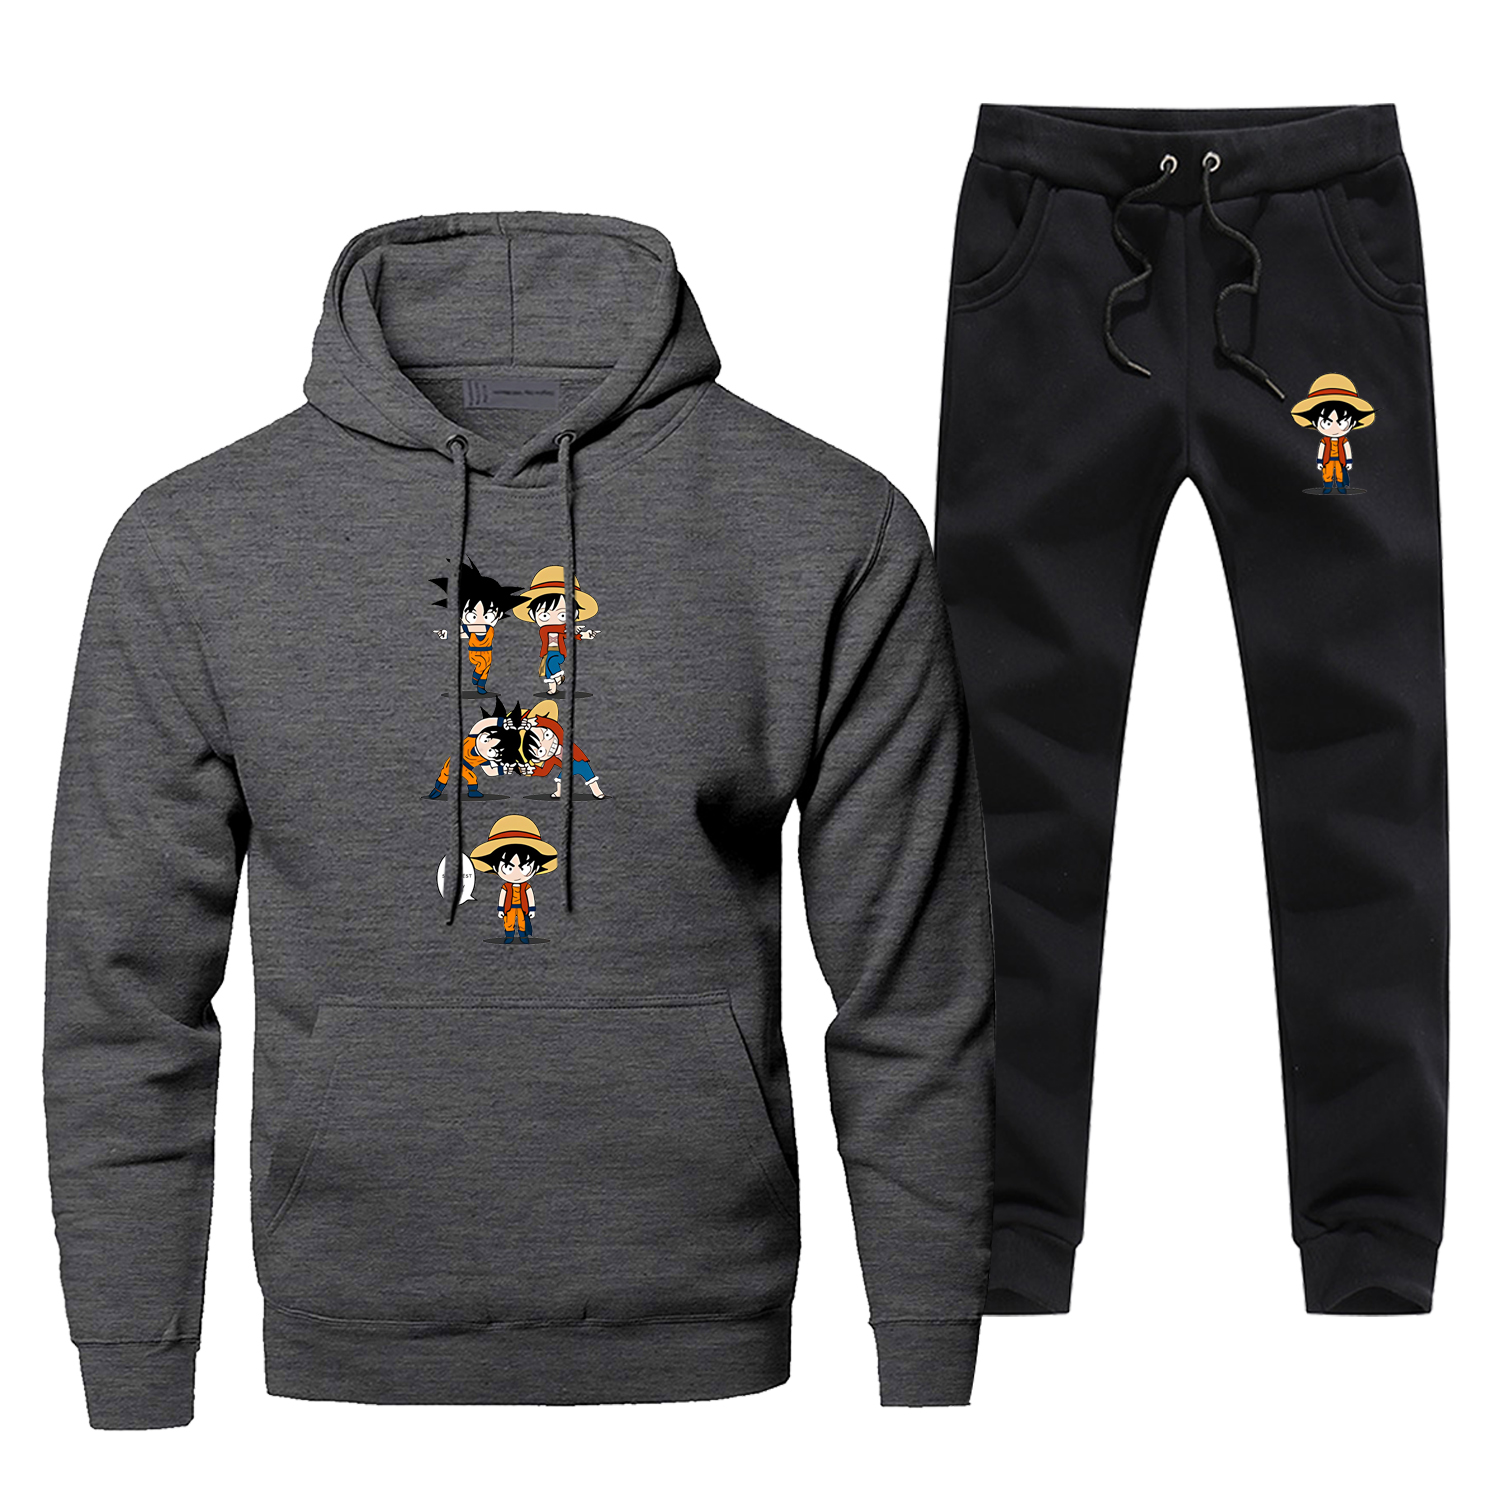 Funny One Piece Luffy Dragon Ball Goku Fusion Hoodies+pants Two Piece Sets Men Harajuku Streetwear Fleece Sportswear Sweatpants